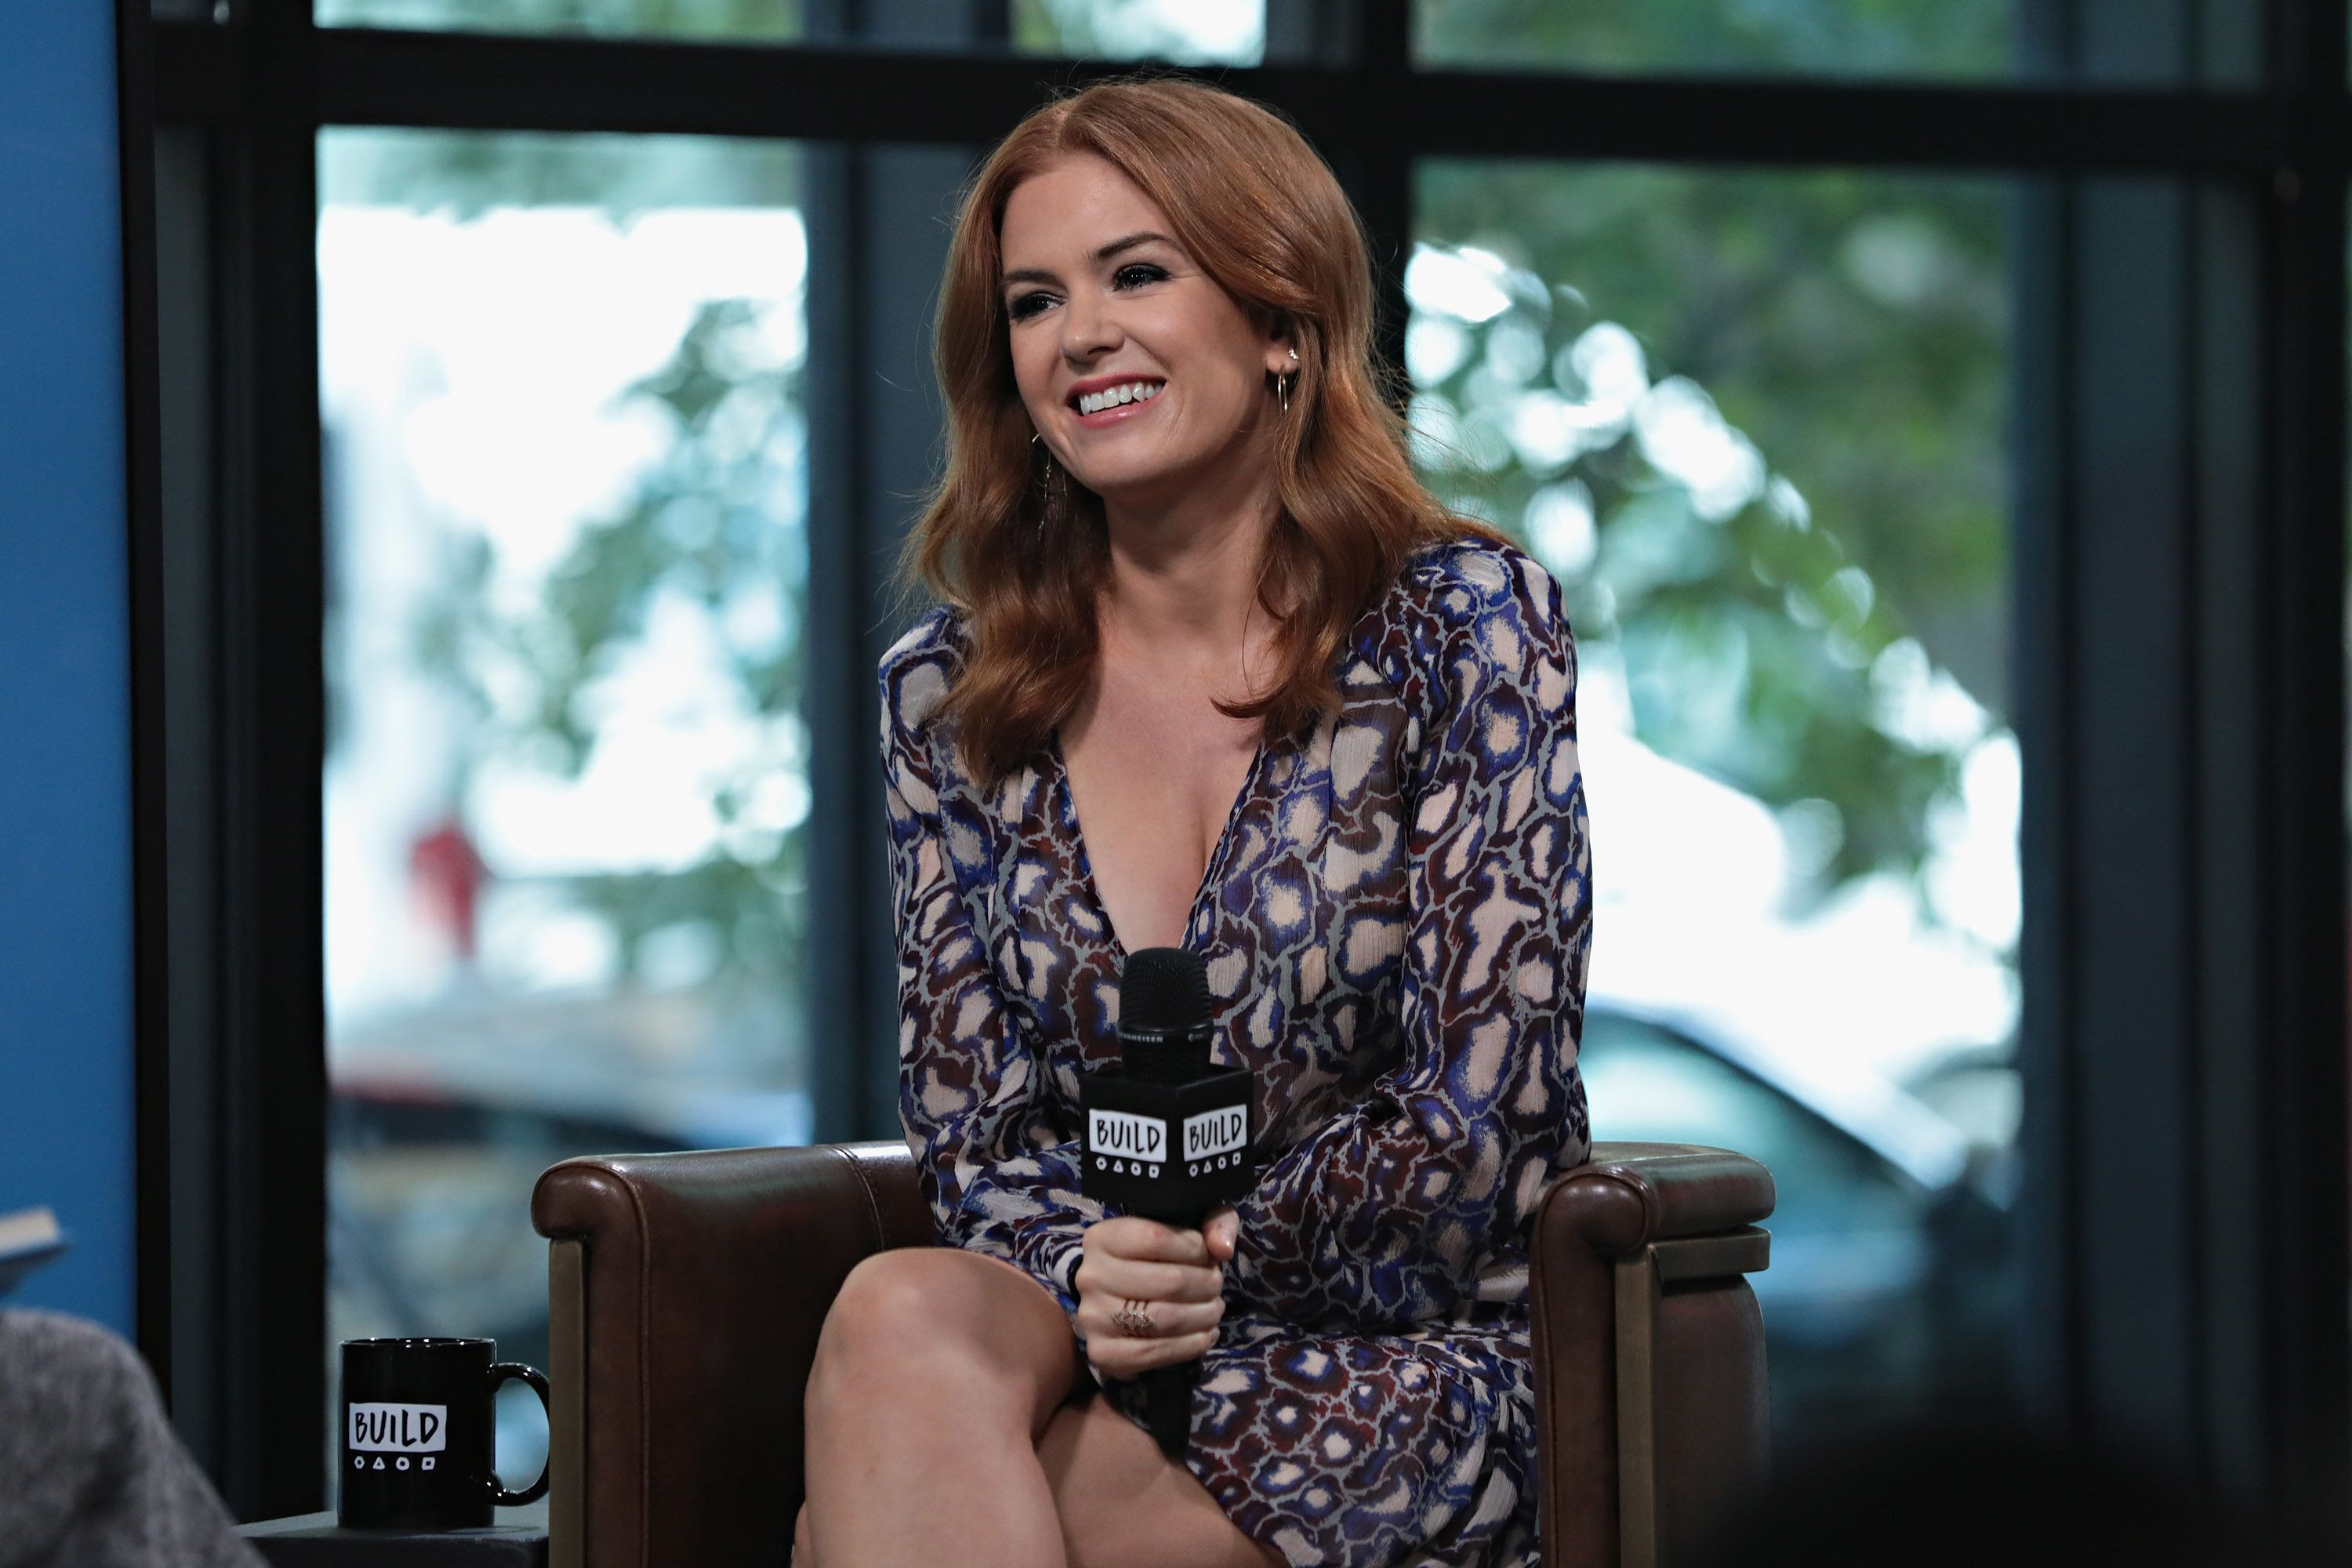 NEW YORK, NY - OCTOBER 03:  Build presents Isla Fisher discussing her book 'Marge In Charge' at Build Studio on October 3, 2017 in New York City.  (Photo by Cindy Ord/Getty Images)